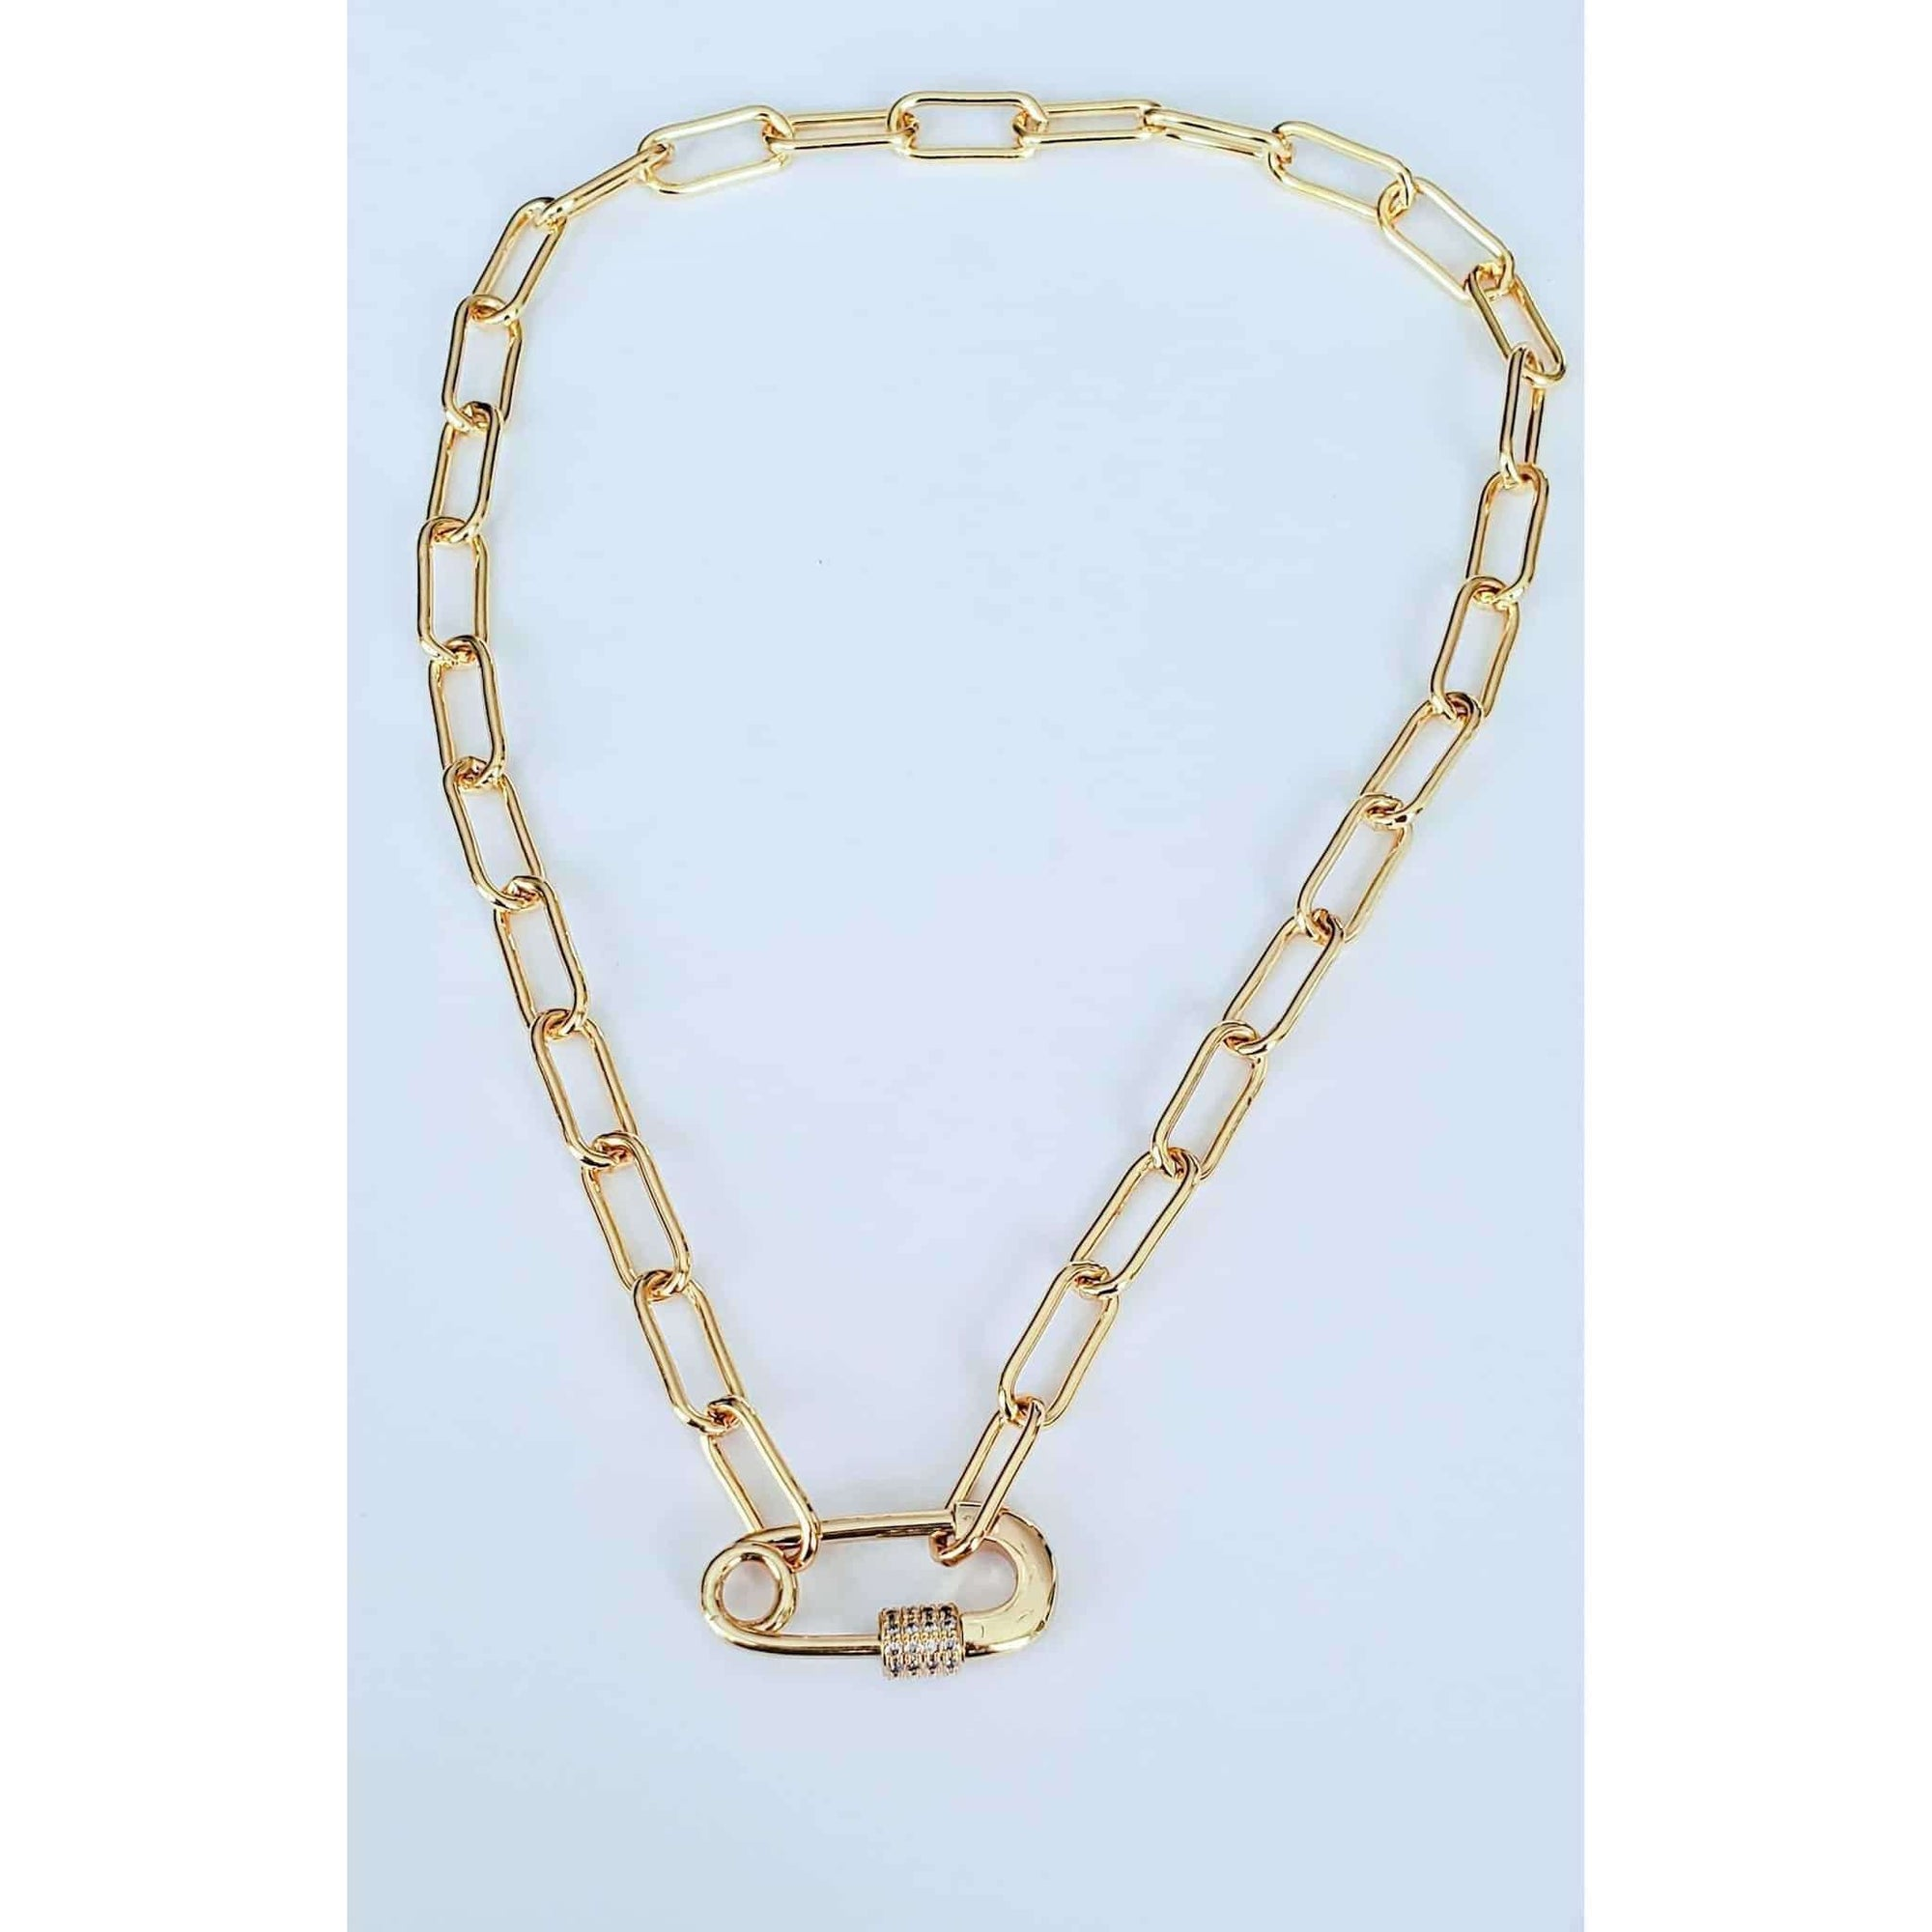 Oval Paperclip Link Chain Necklace - Nicki Lynn Jewelry